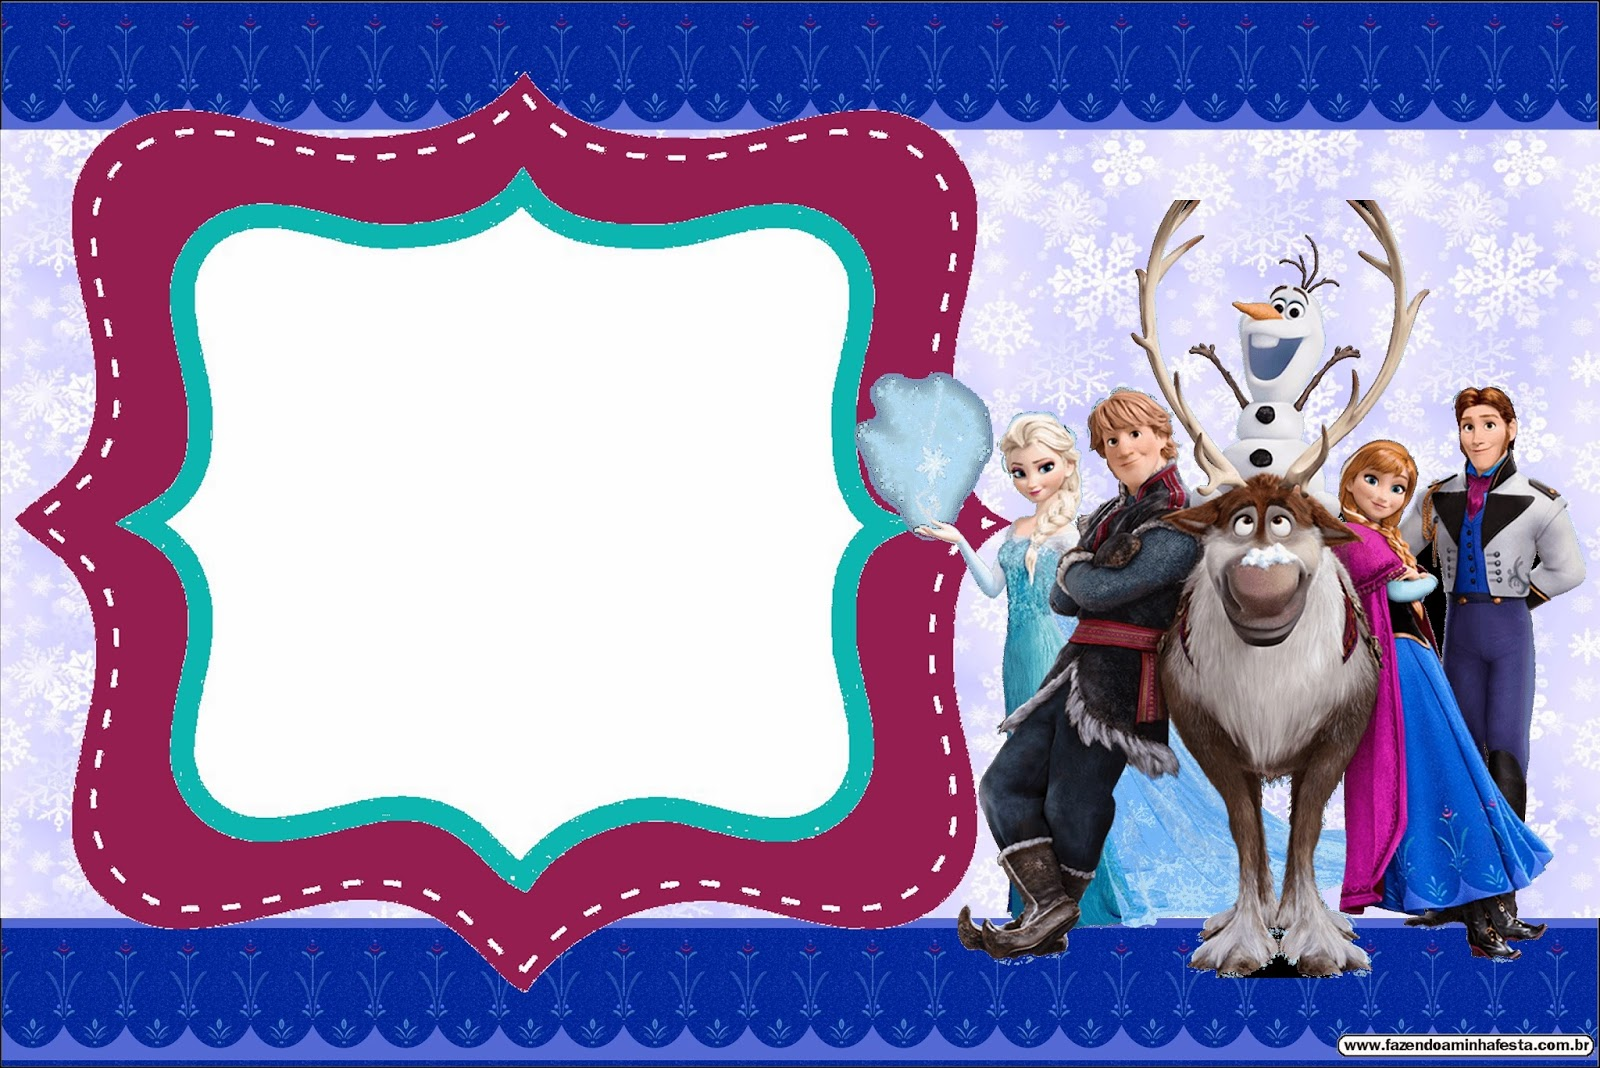 Cute Frozen Party Free Printable Invitations Oh My Fiesta! in english